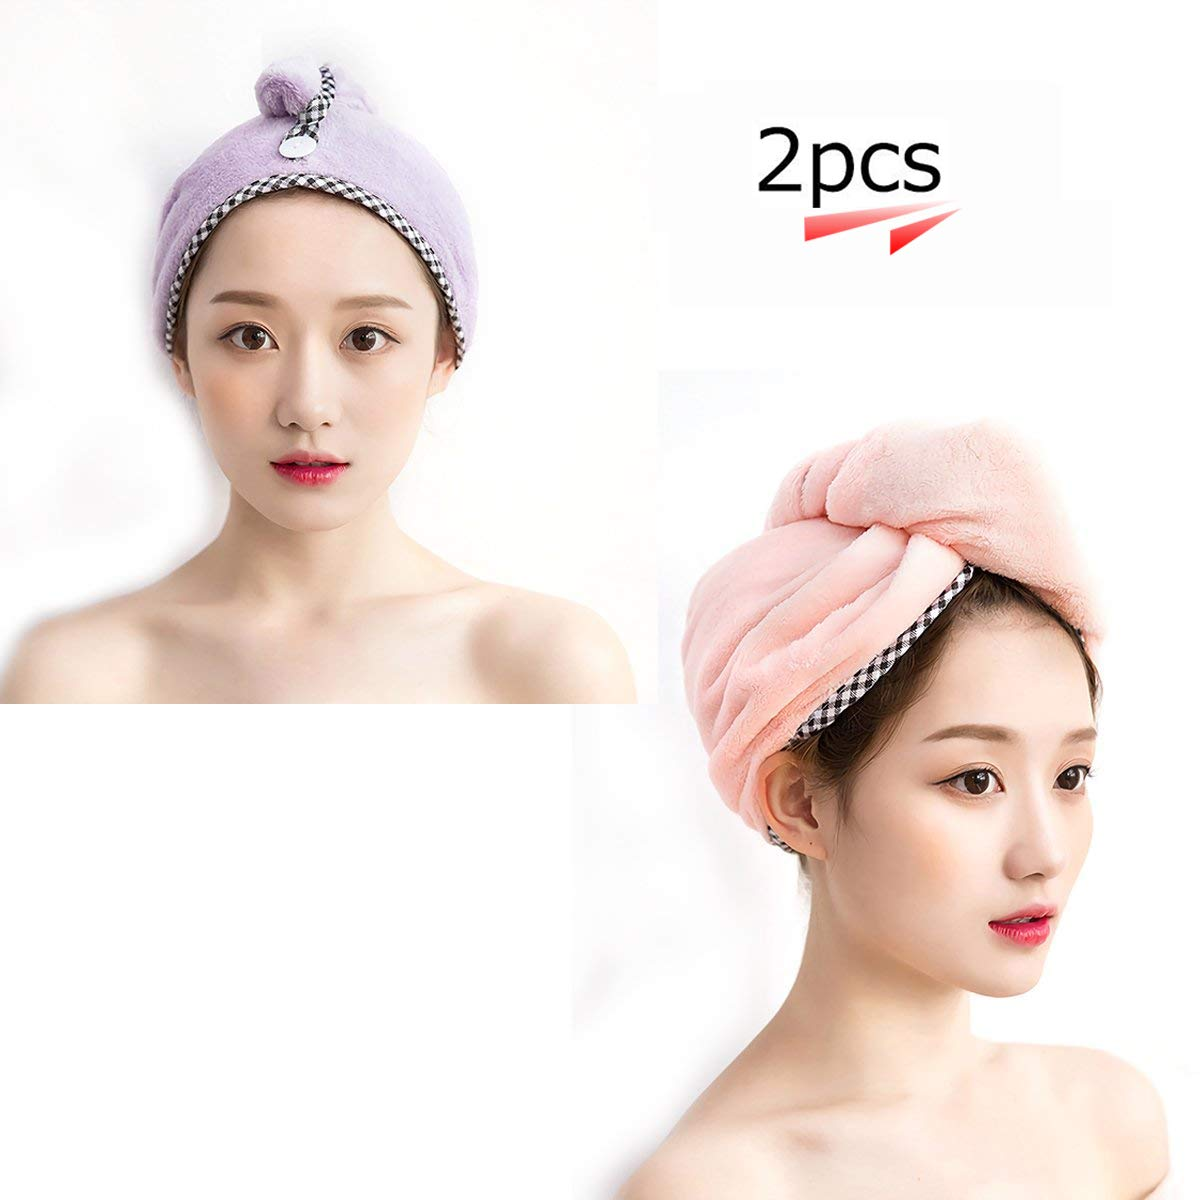 Hair Drying Towels Hair Wrap Turban Water-Absorbent Microfiber Quick Drying Bath Shower Head Towel for Women (2pcs, Purple/Pink) Suces